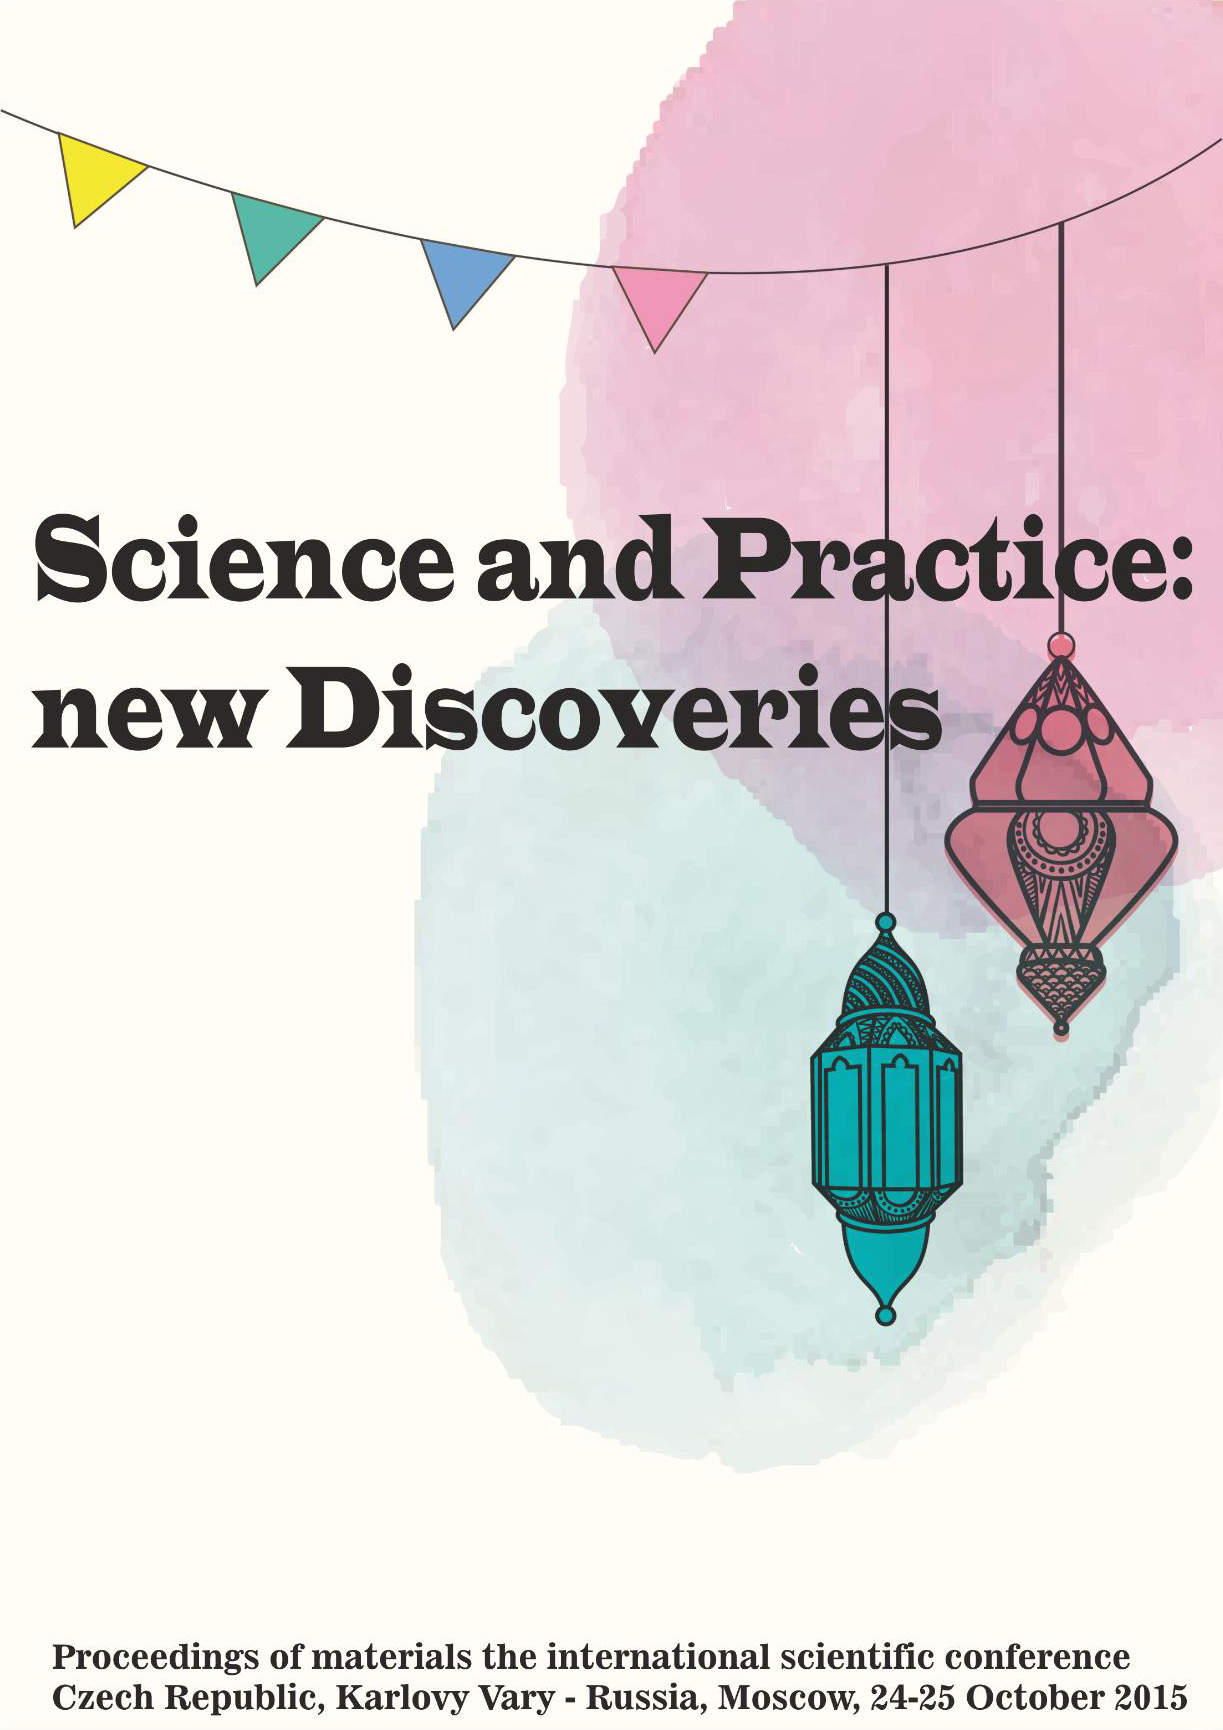 Сборник статей Science and Practice: new Discoveries. Proceedings of materials the international scientific conference. Czech Republic, Karlovy Vary – Russia, Moscow, 24-25 October 2015 аккумулятор black horns для геймпада xbox one